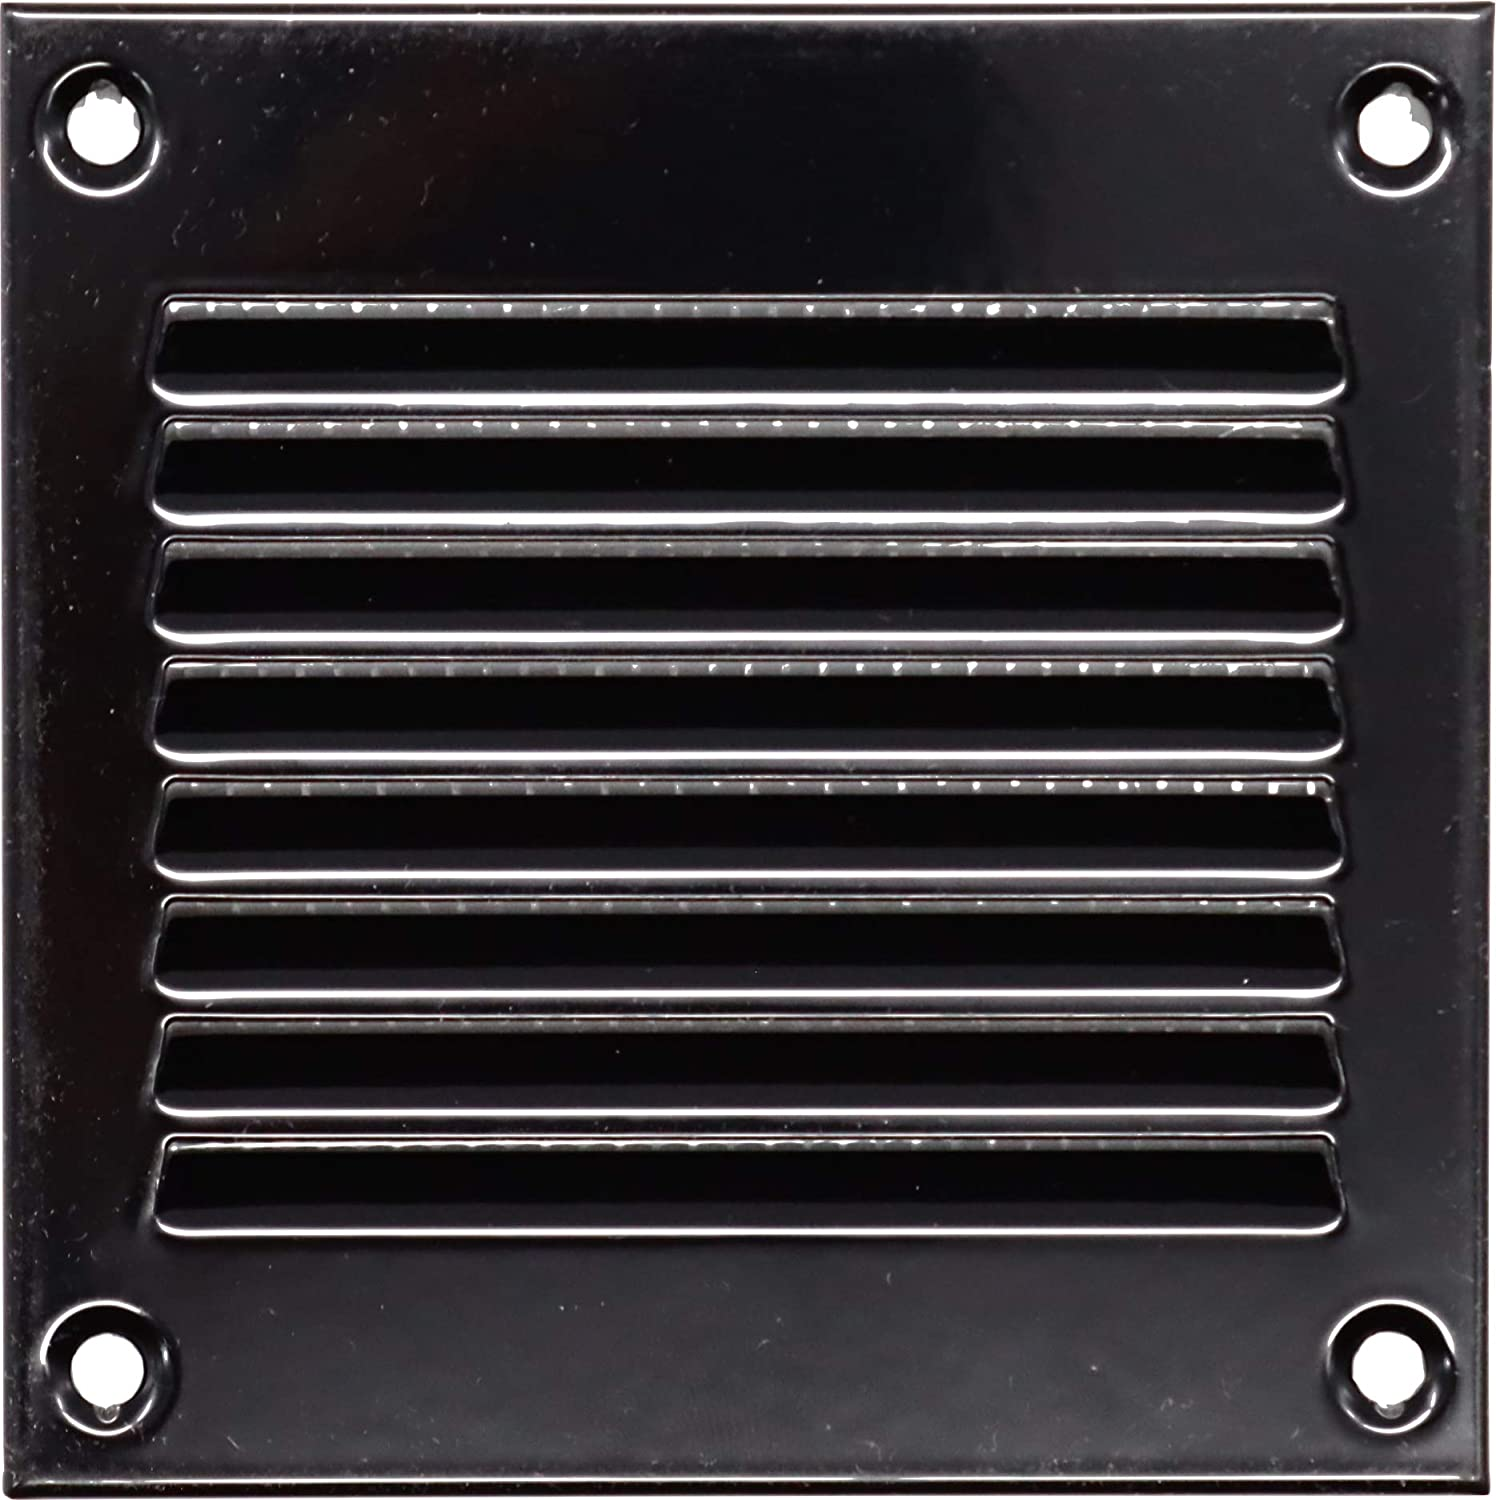 Vent Systems 4x4 inch Air Attention brand Metal Return Challenge the lowest price Cover - Black